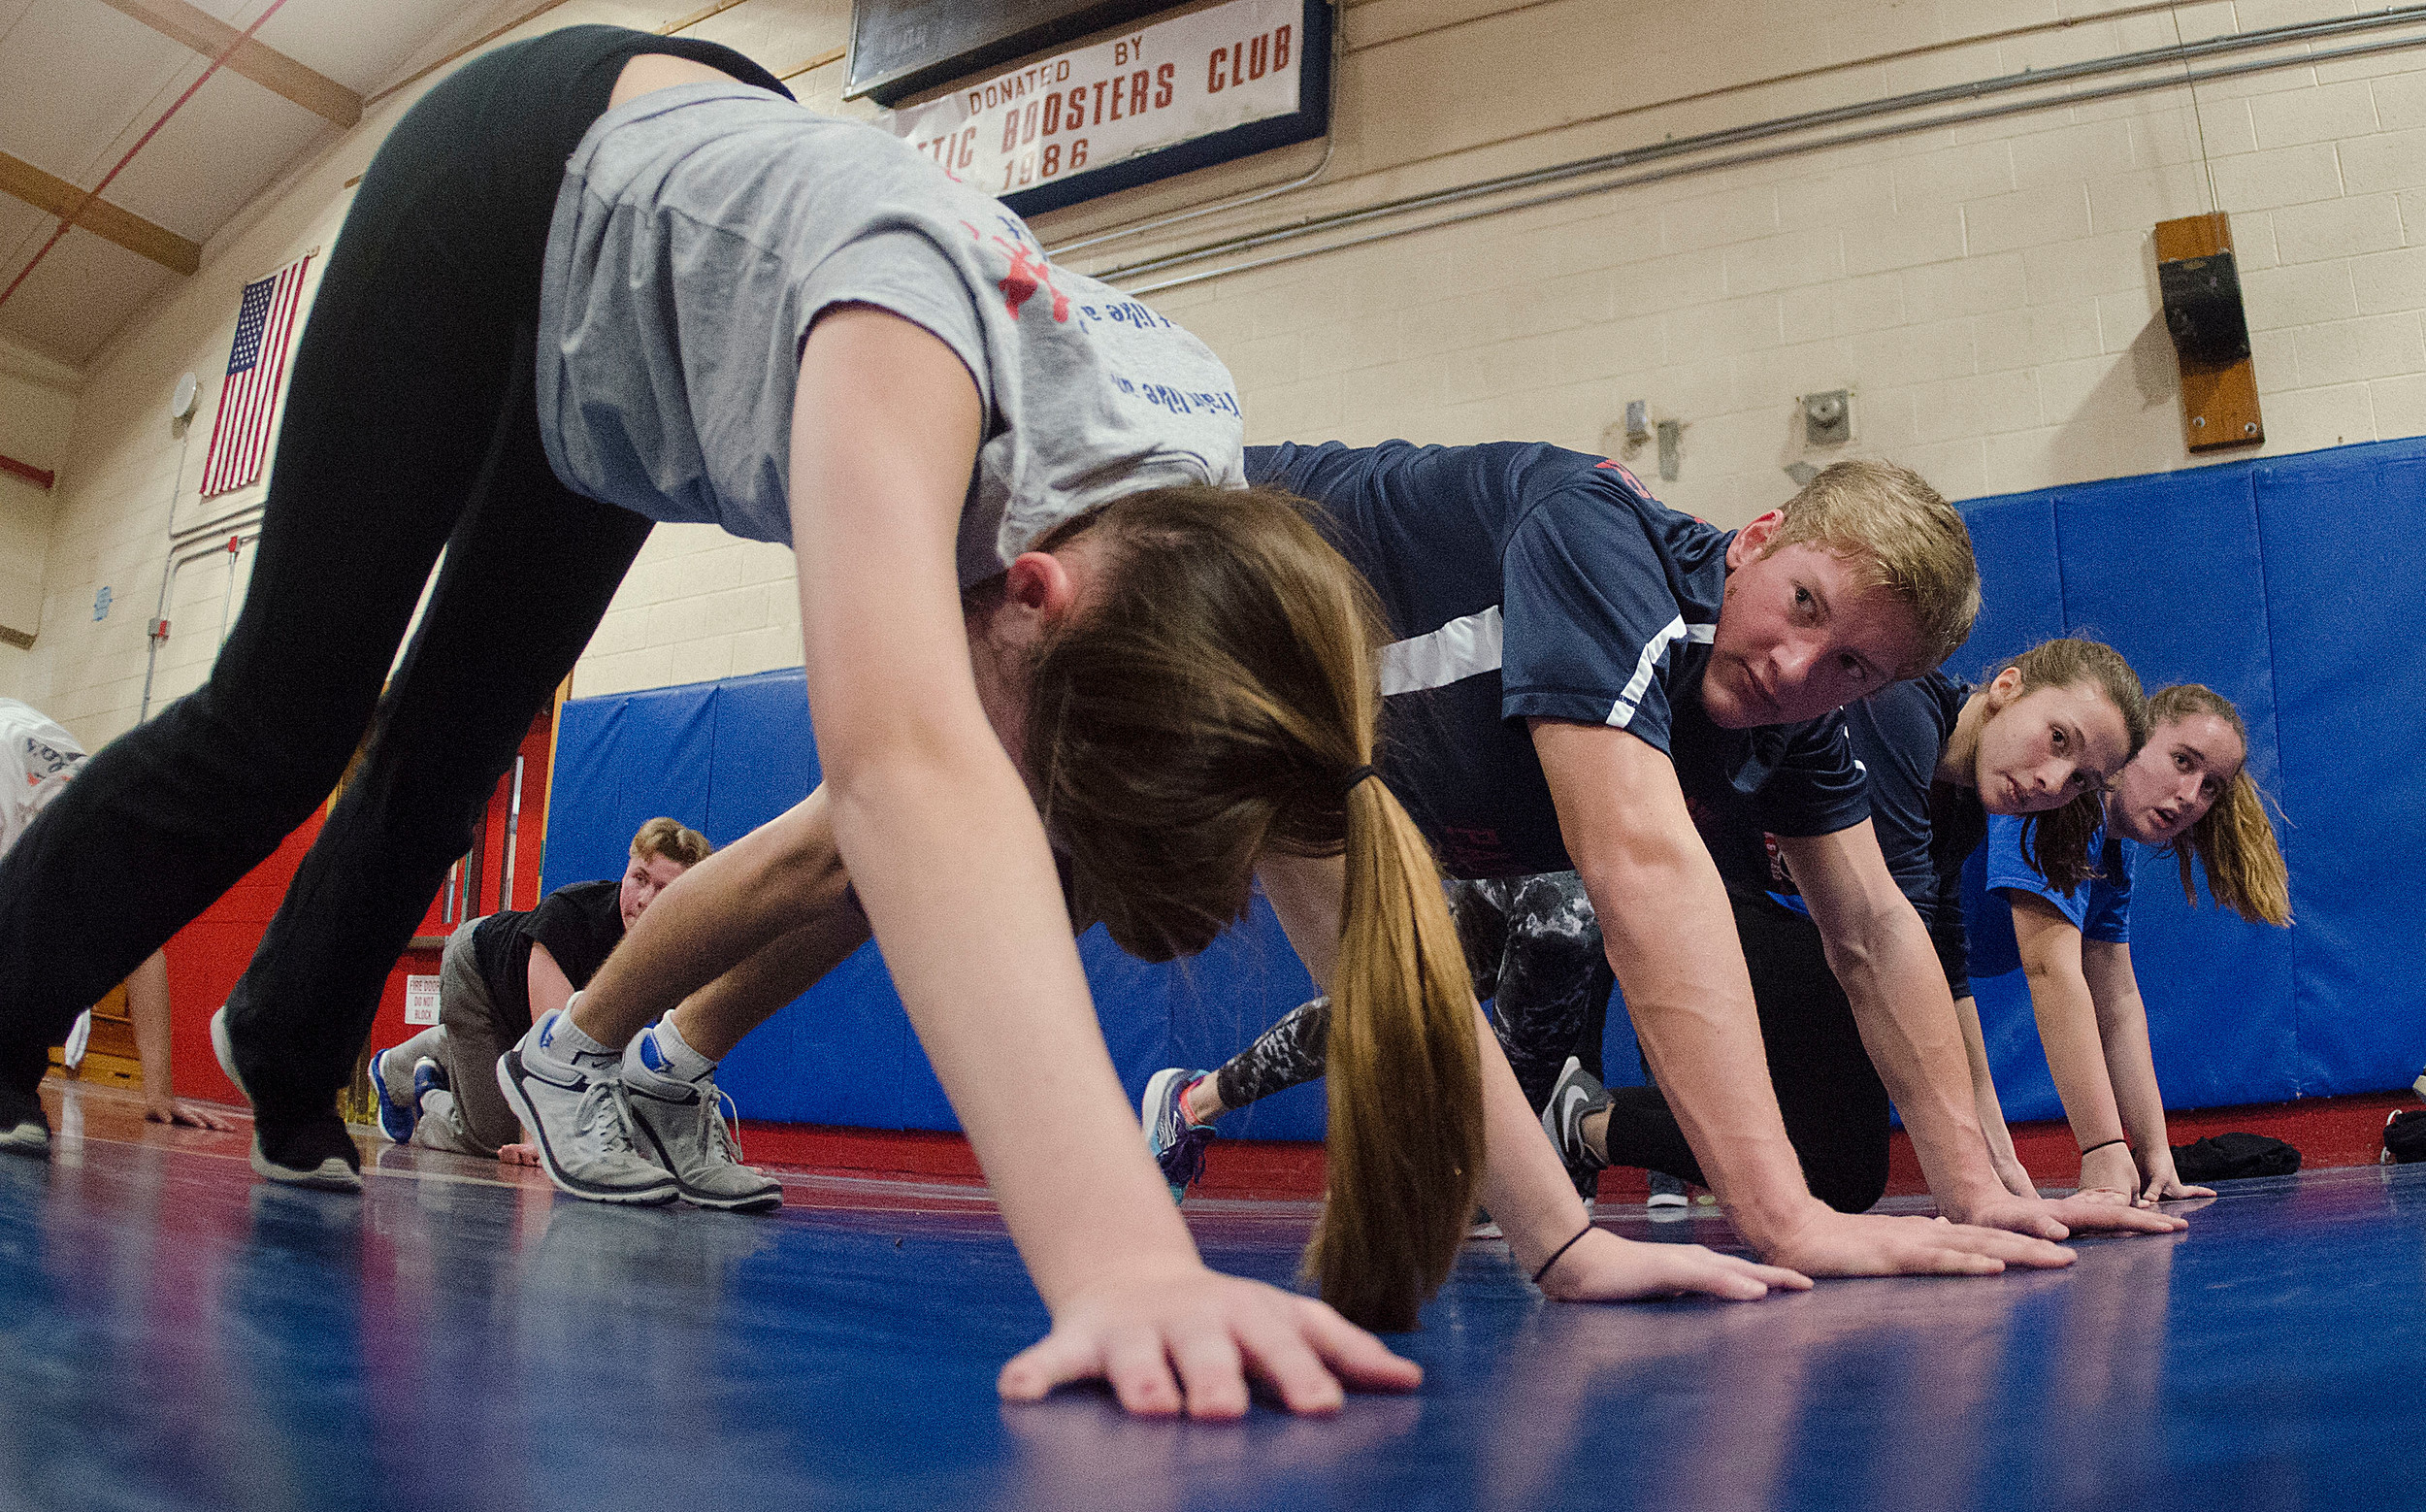 John Boruch (middle) looks on while his team holds a plank position during a drill.